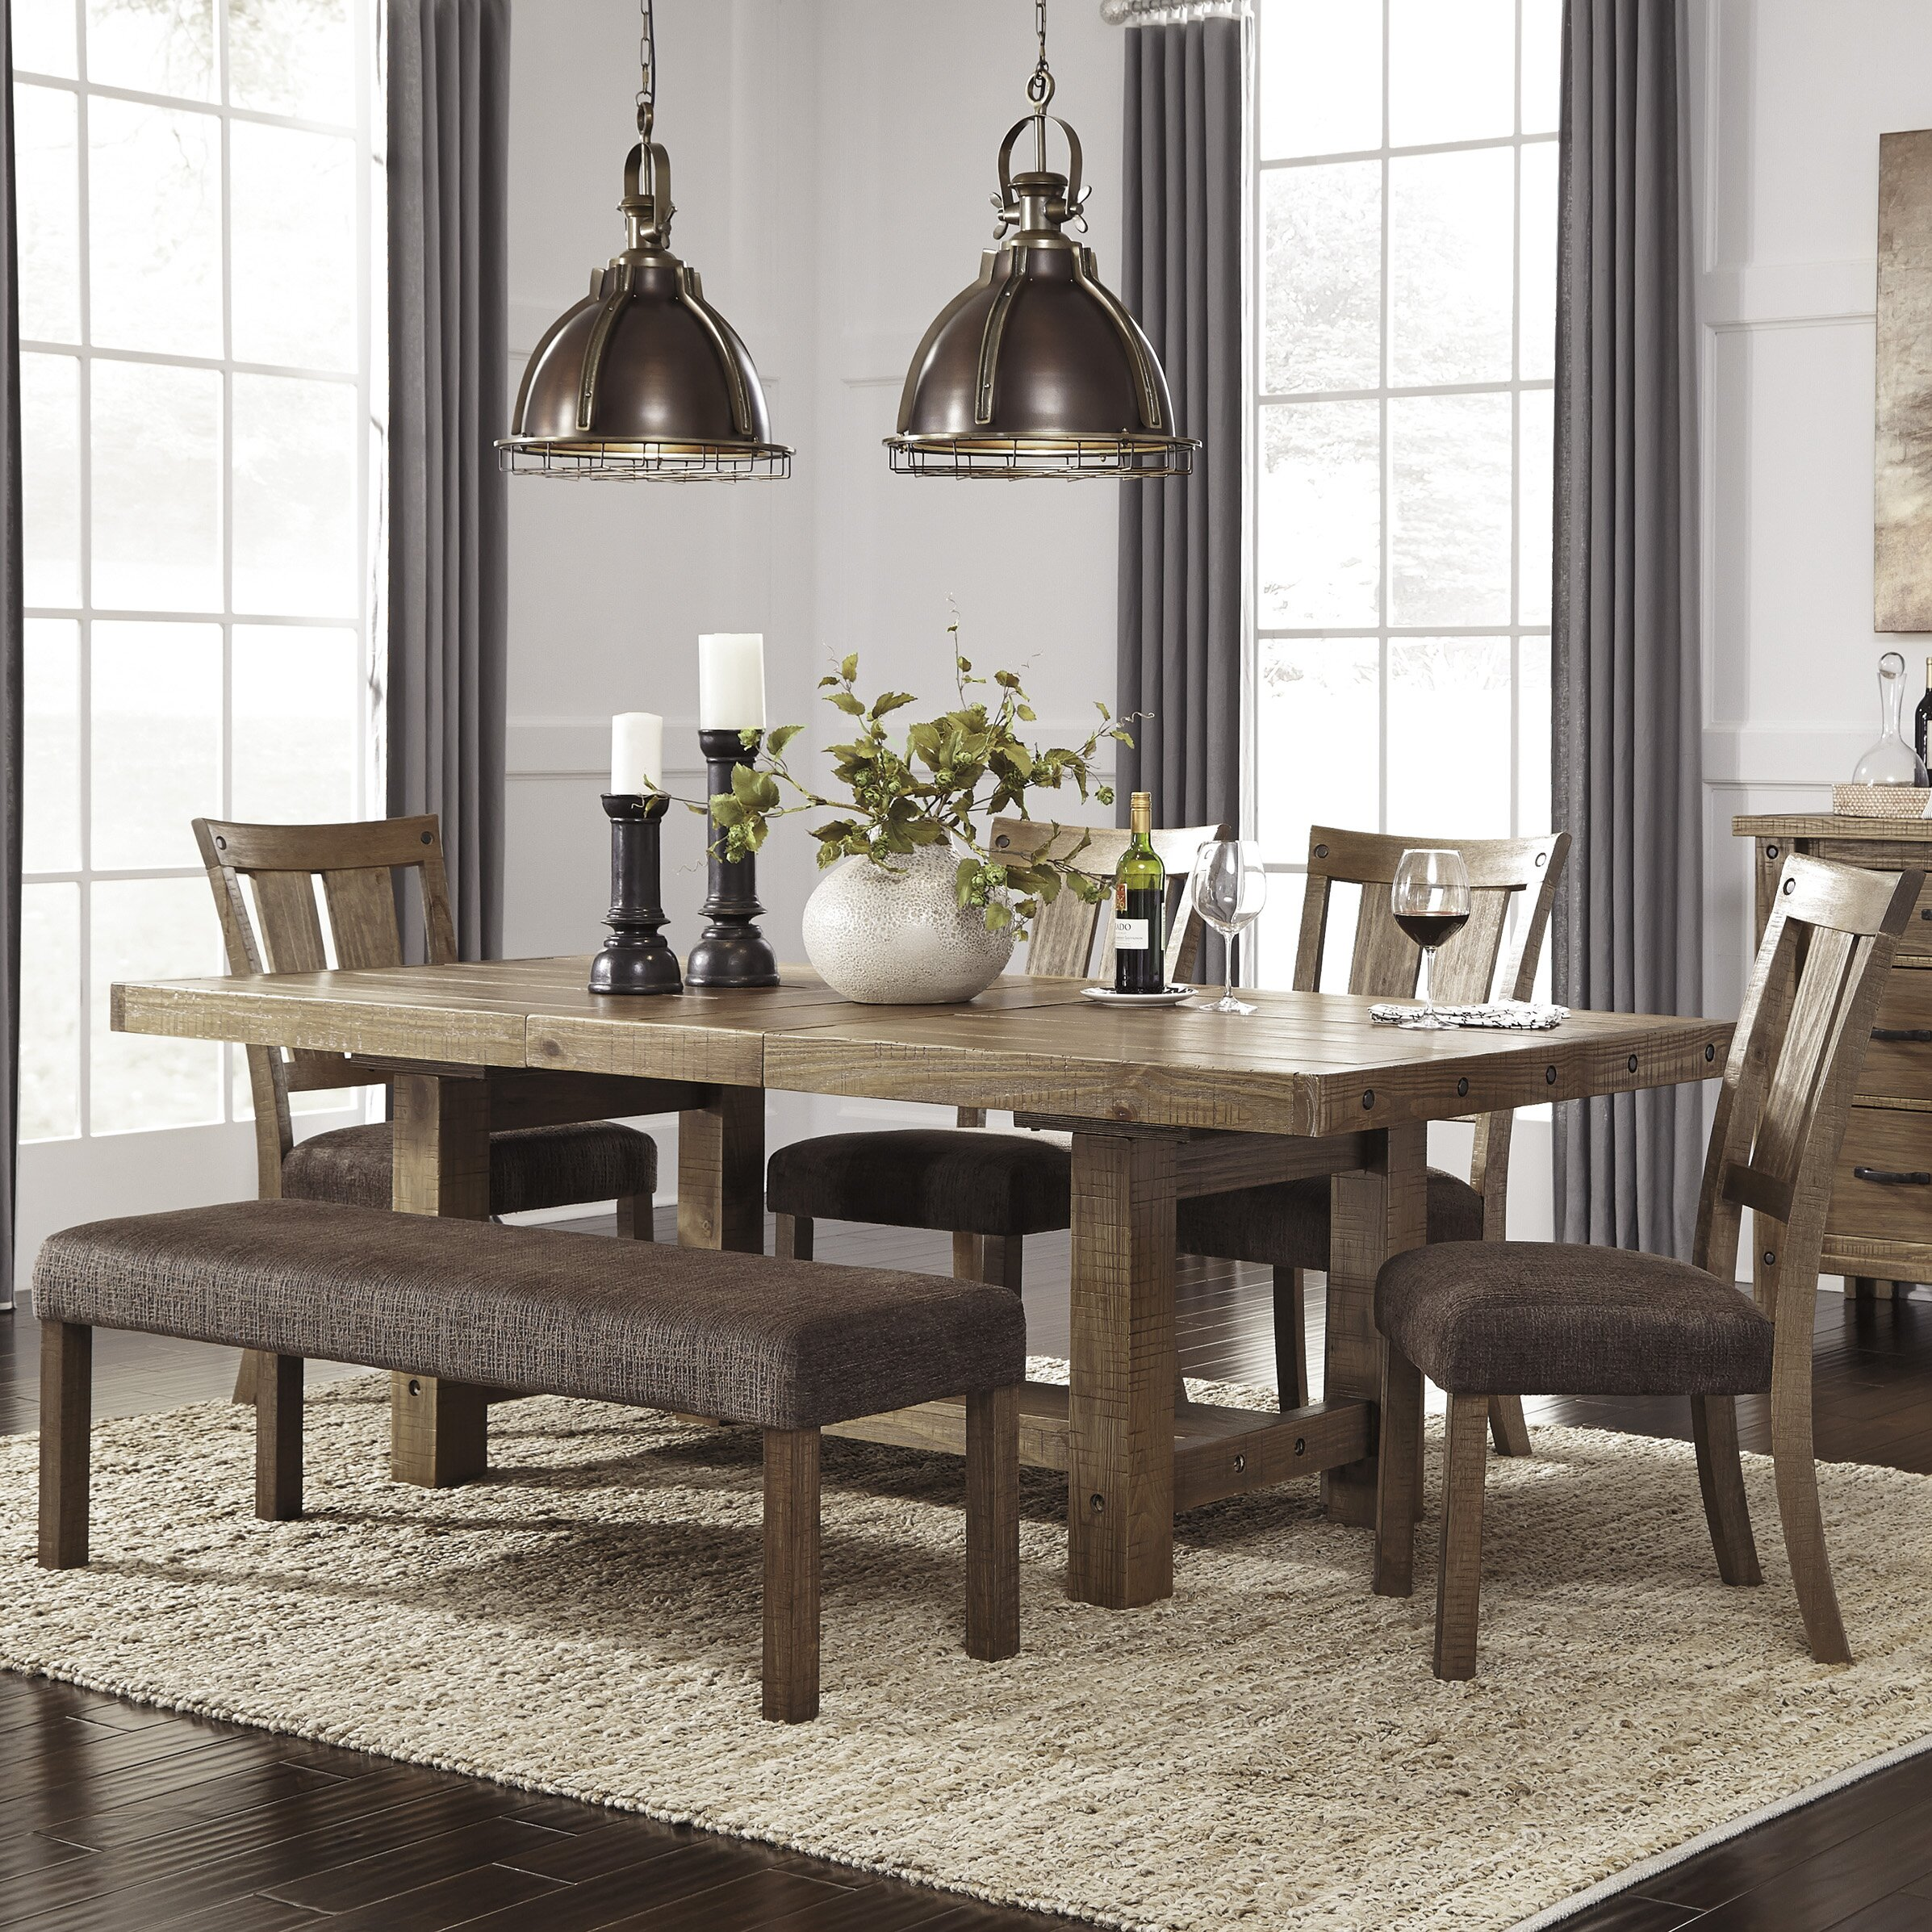 Signature design by ashley 9 piece dining set reviews for Dining room furniture designs